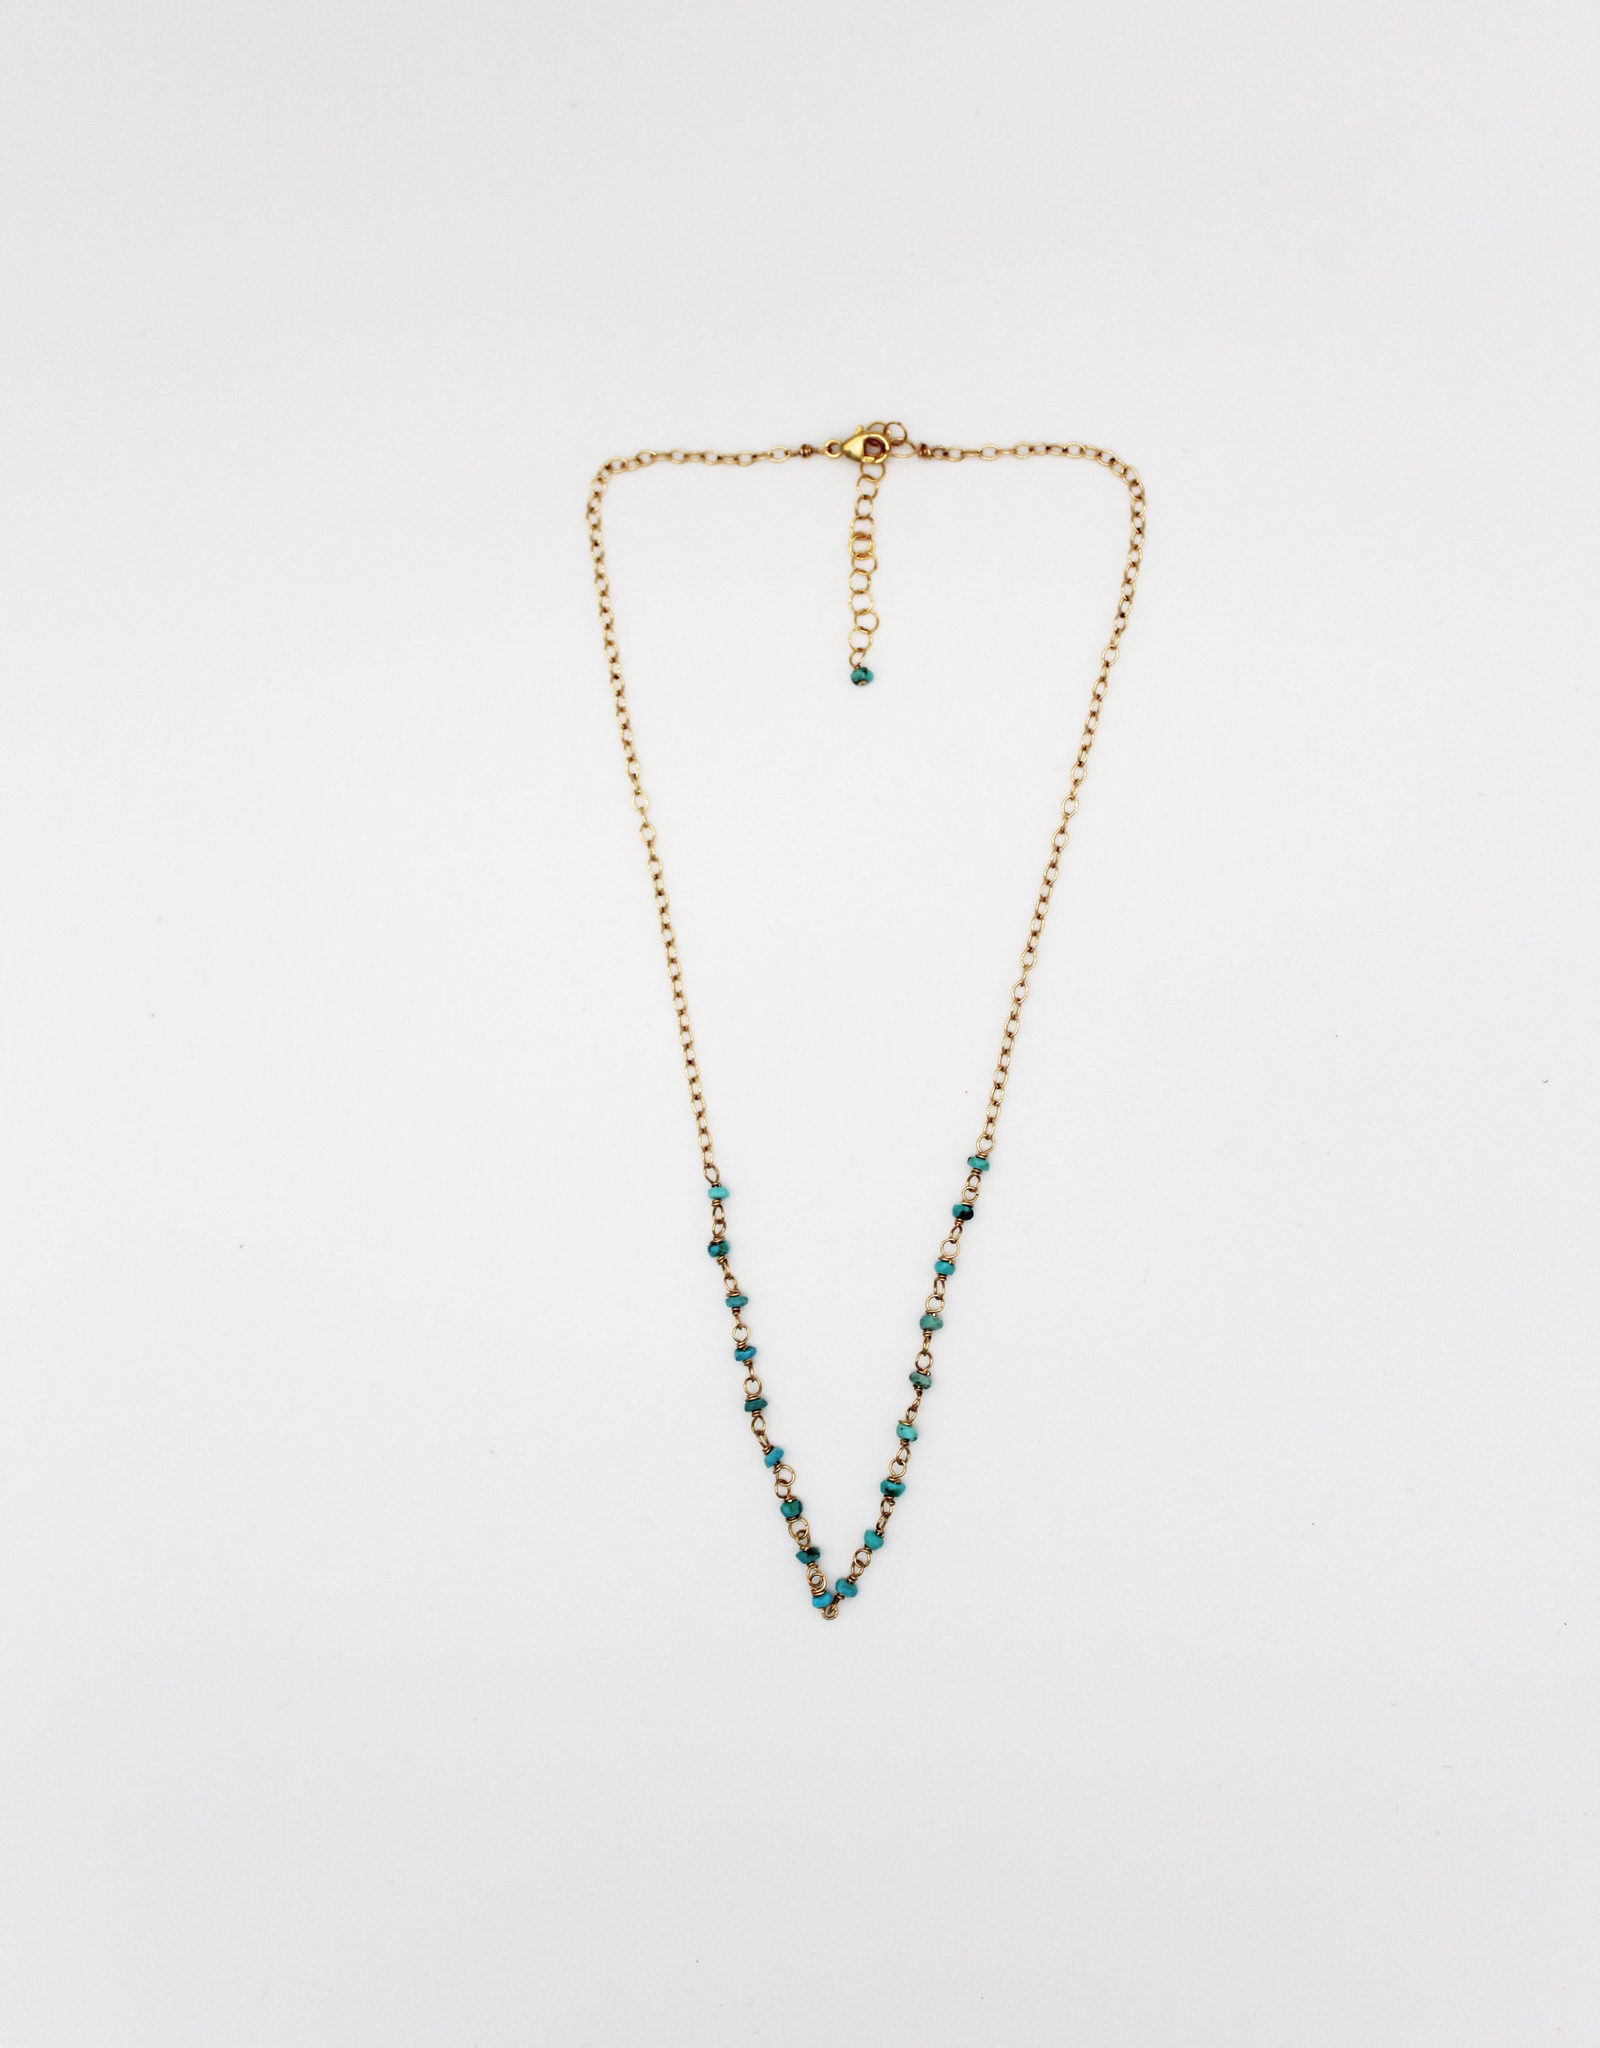 Karla Pattur KP27 Turquoise 14K Filled Necklace